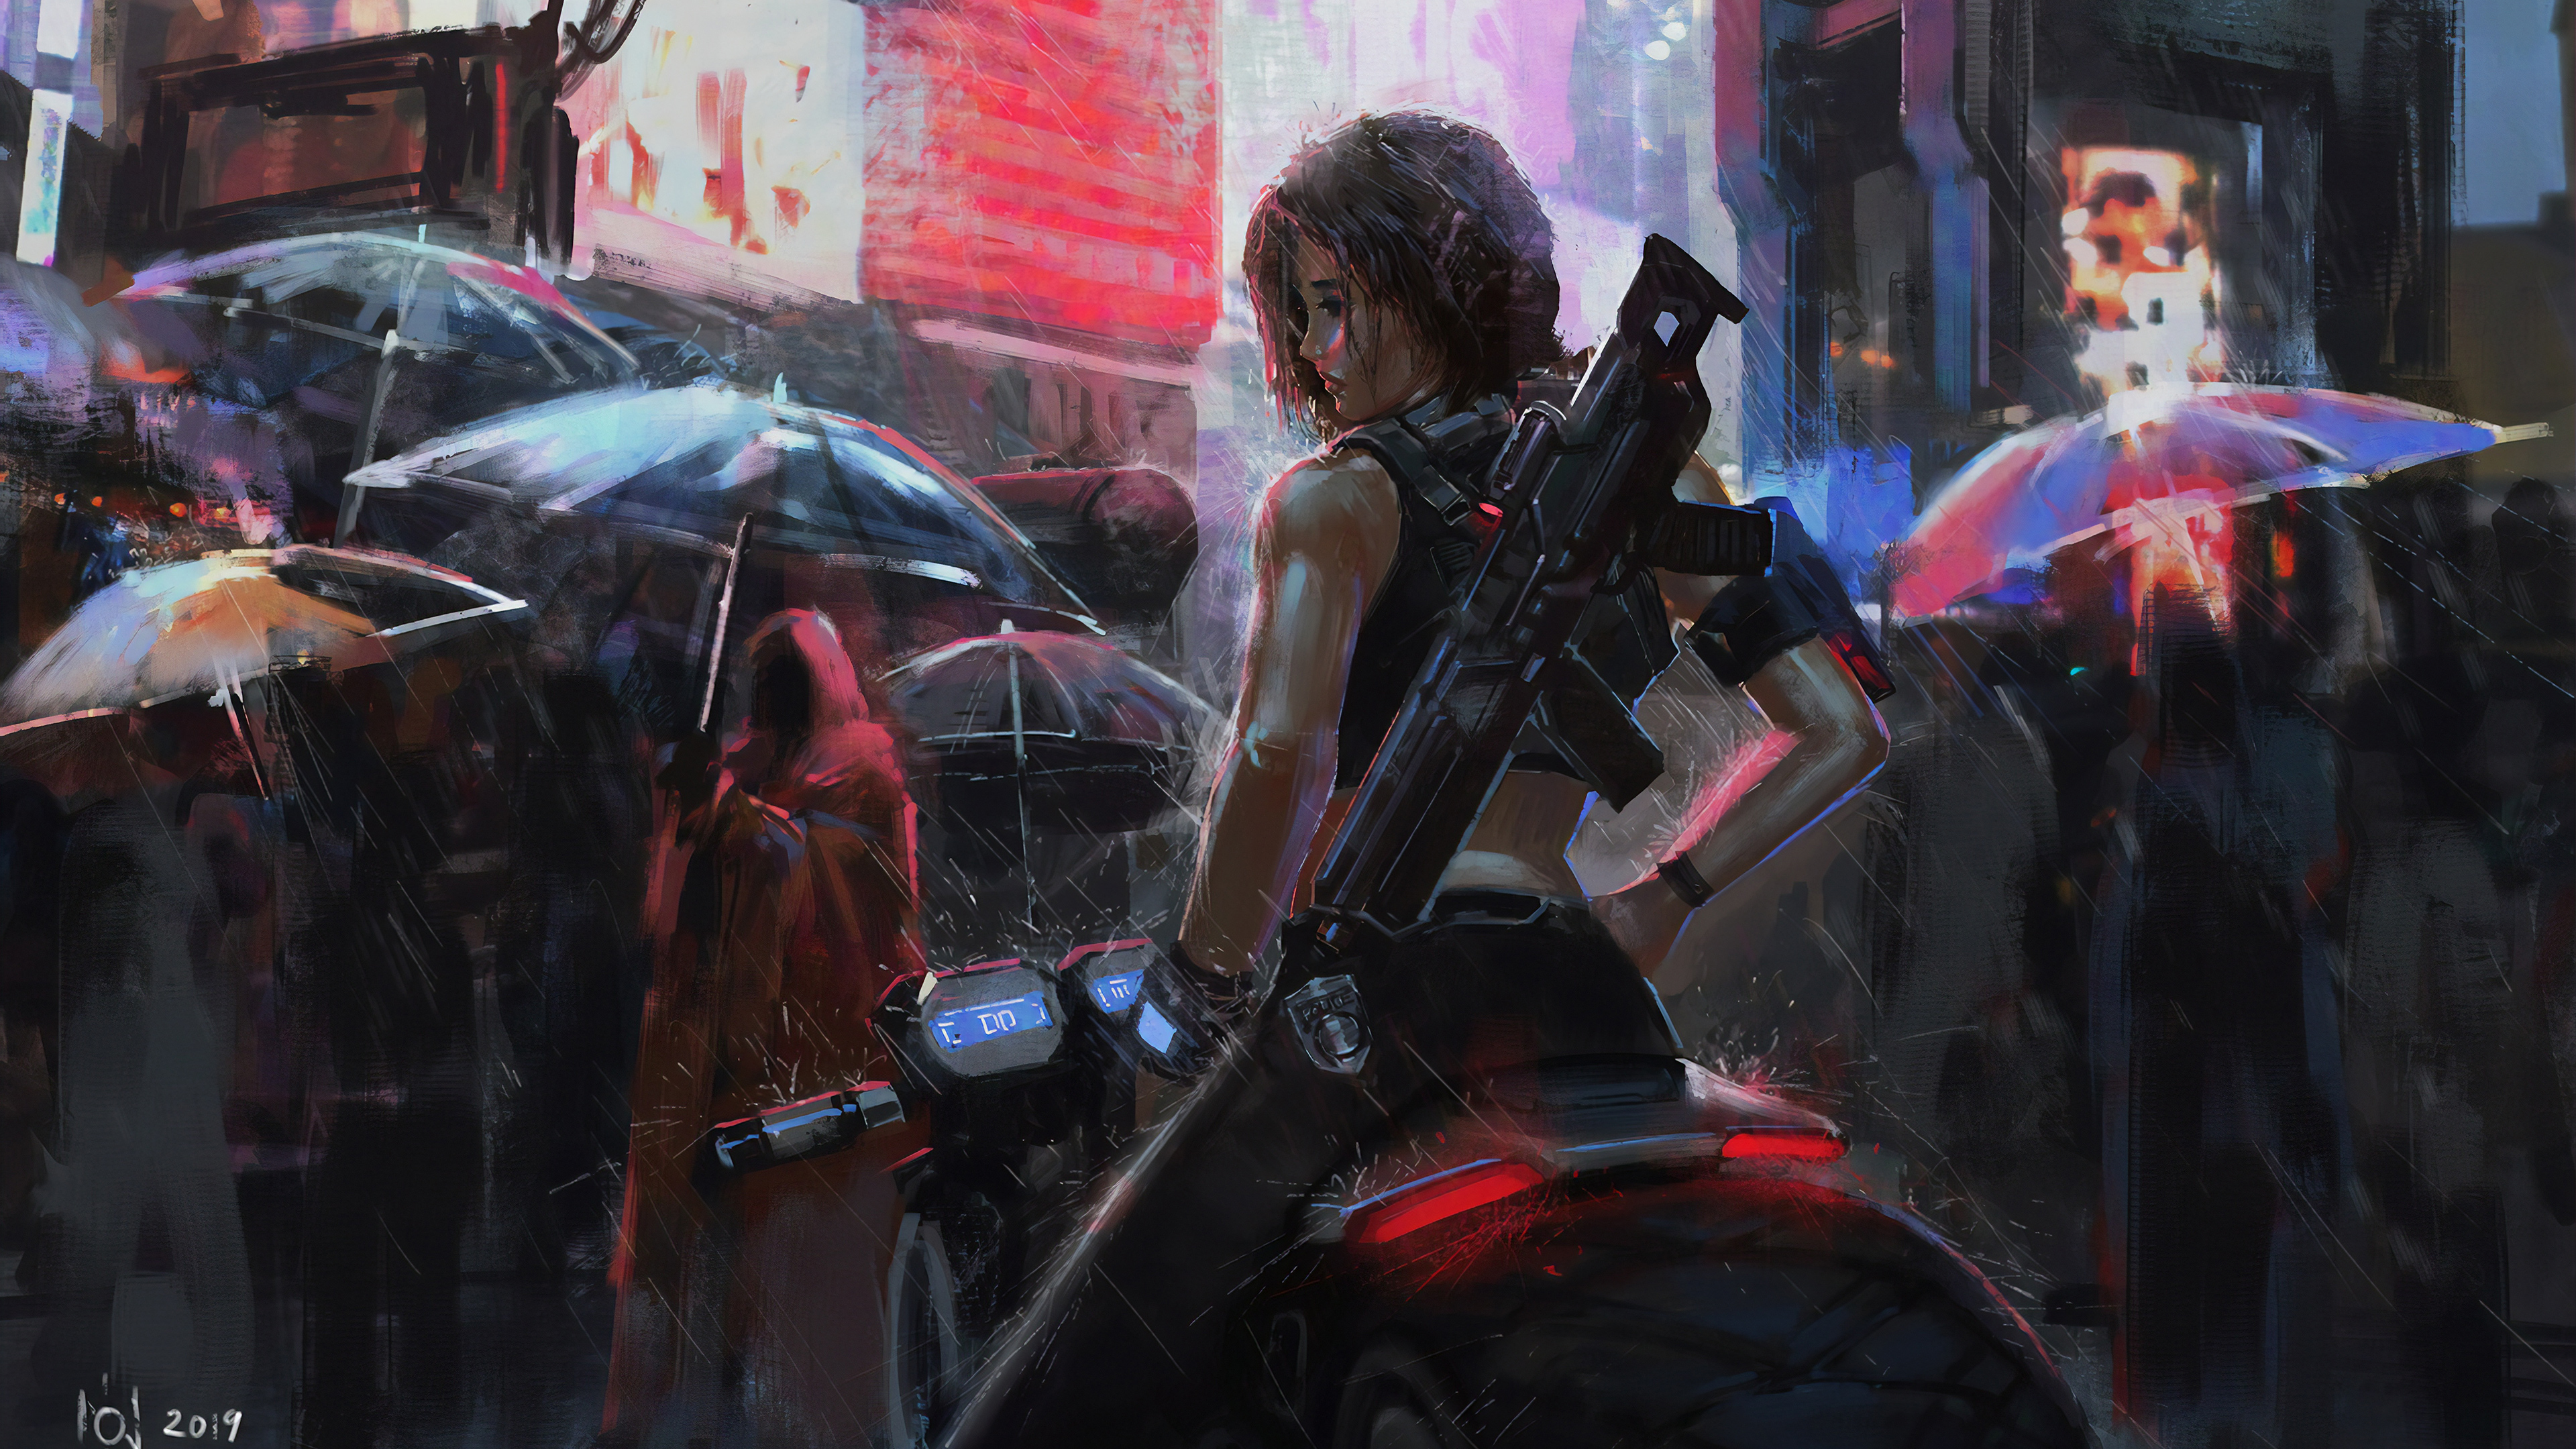 Wallpaper 4k Neon Biker Girl Rain 4k Wallpapers Anime Girl Wallpapers Anime Wallpapers Deviantart Wallpapers Hd Wallpapers Neon Wallpapers Rain Wallpapers